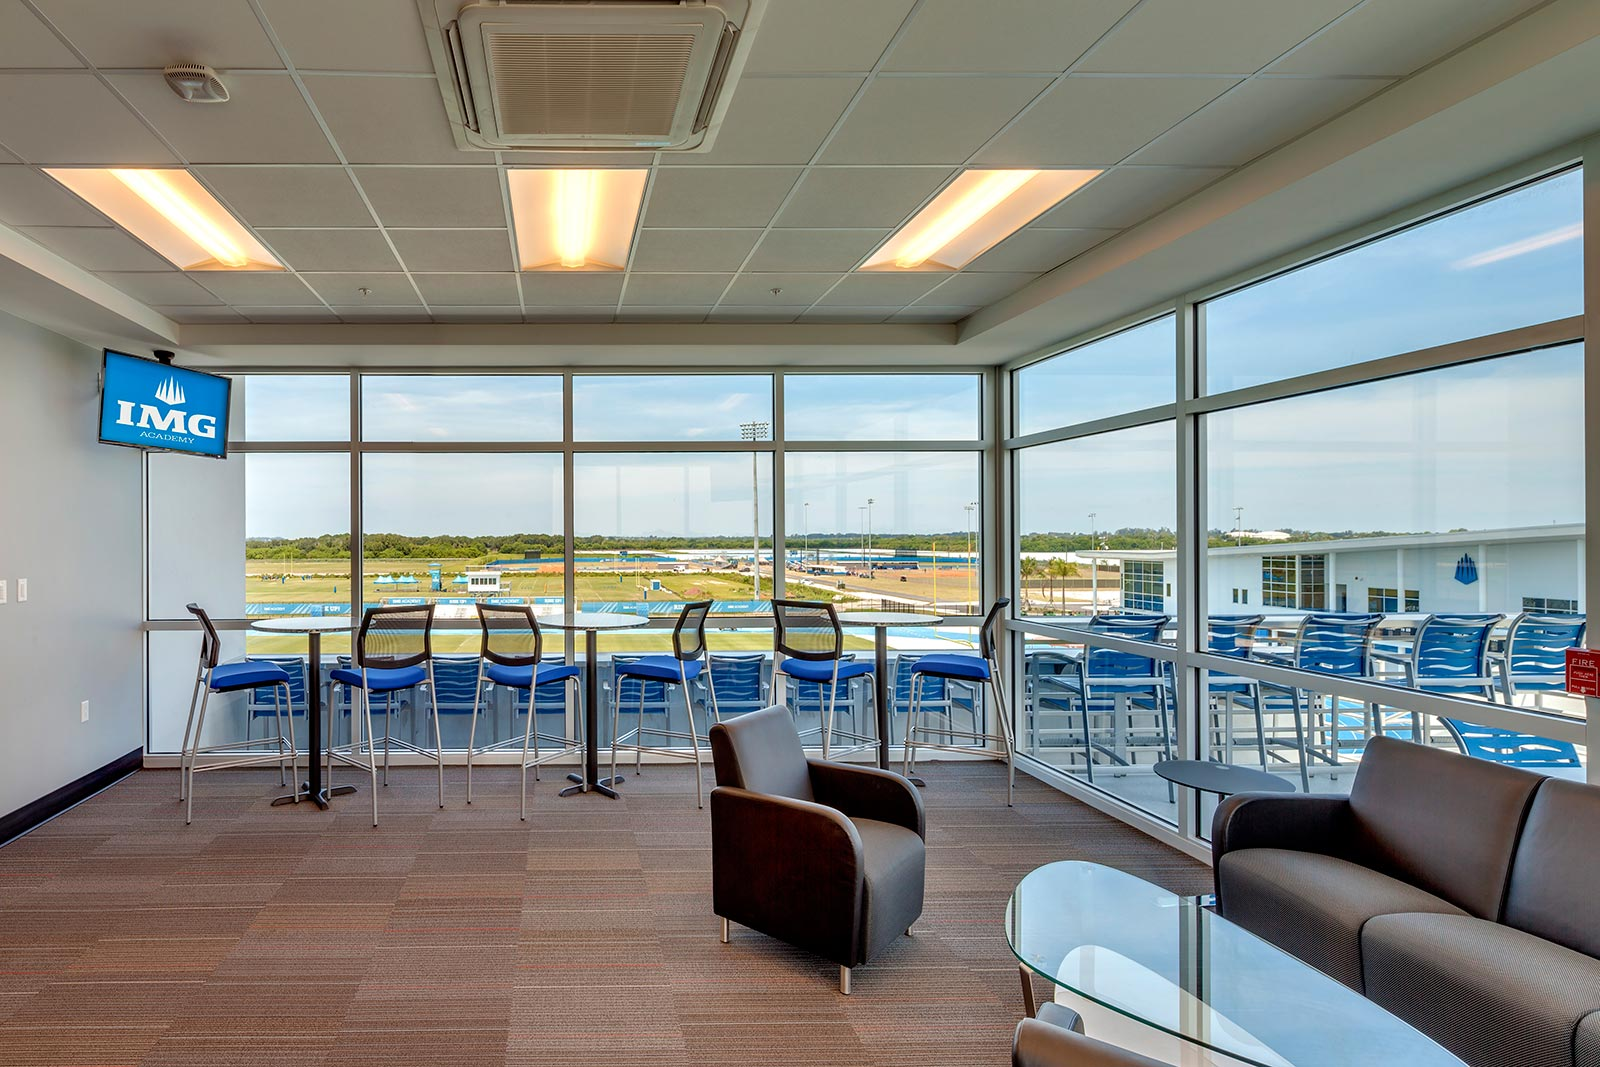 img academy stadium balcony room